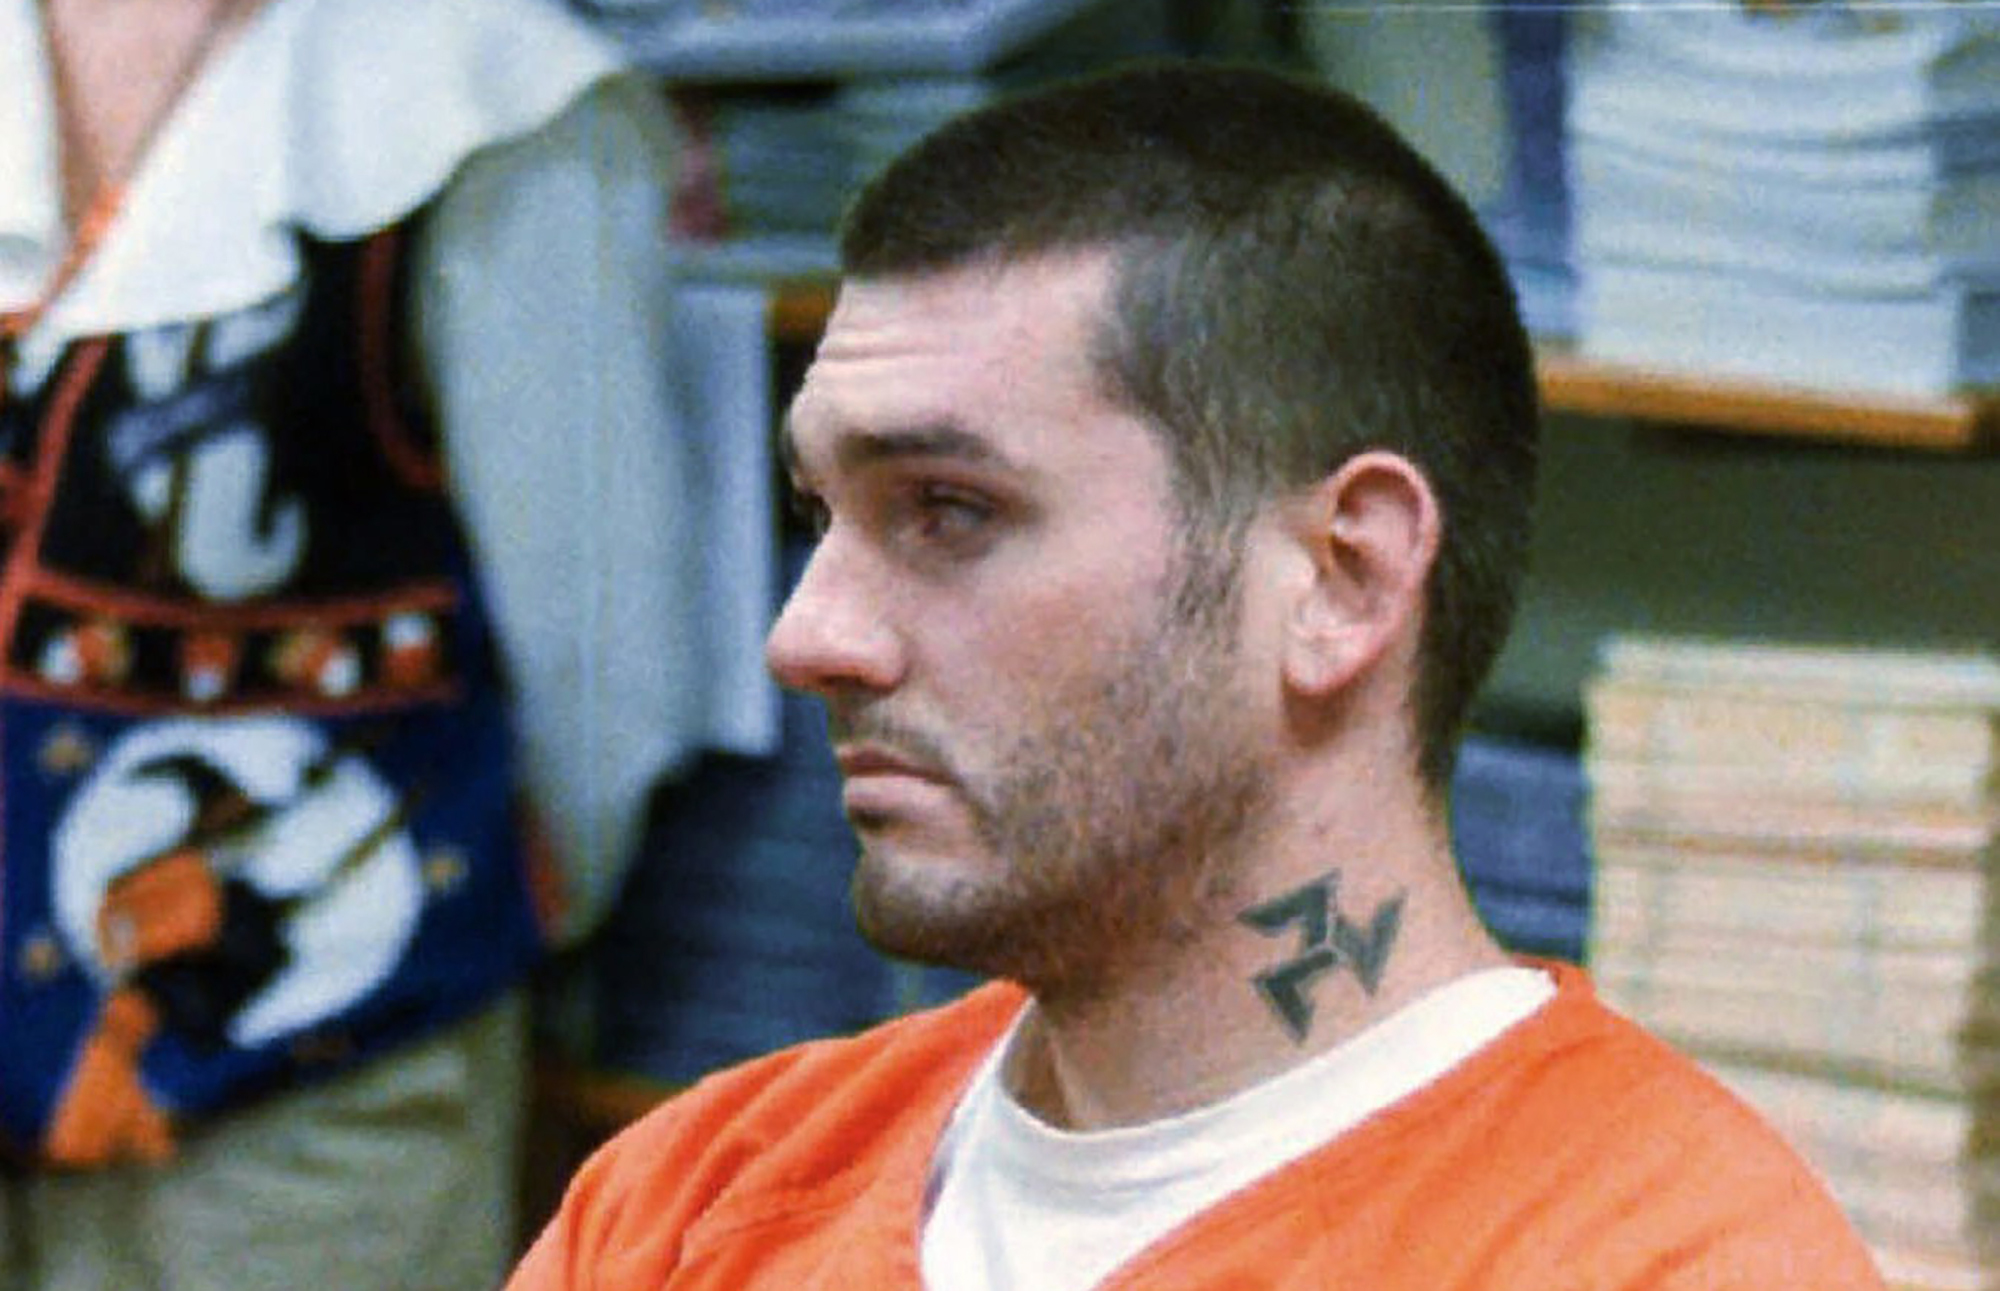 In this Oct. 31 1997 file photo, Daniel Lewis Lee waits for his arraignment hearing for murder in the Pope County Detention Center in Russellville, Ark. (Dan Pierce/The Courier via AP, File)